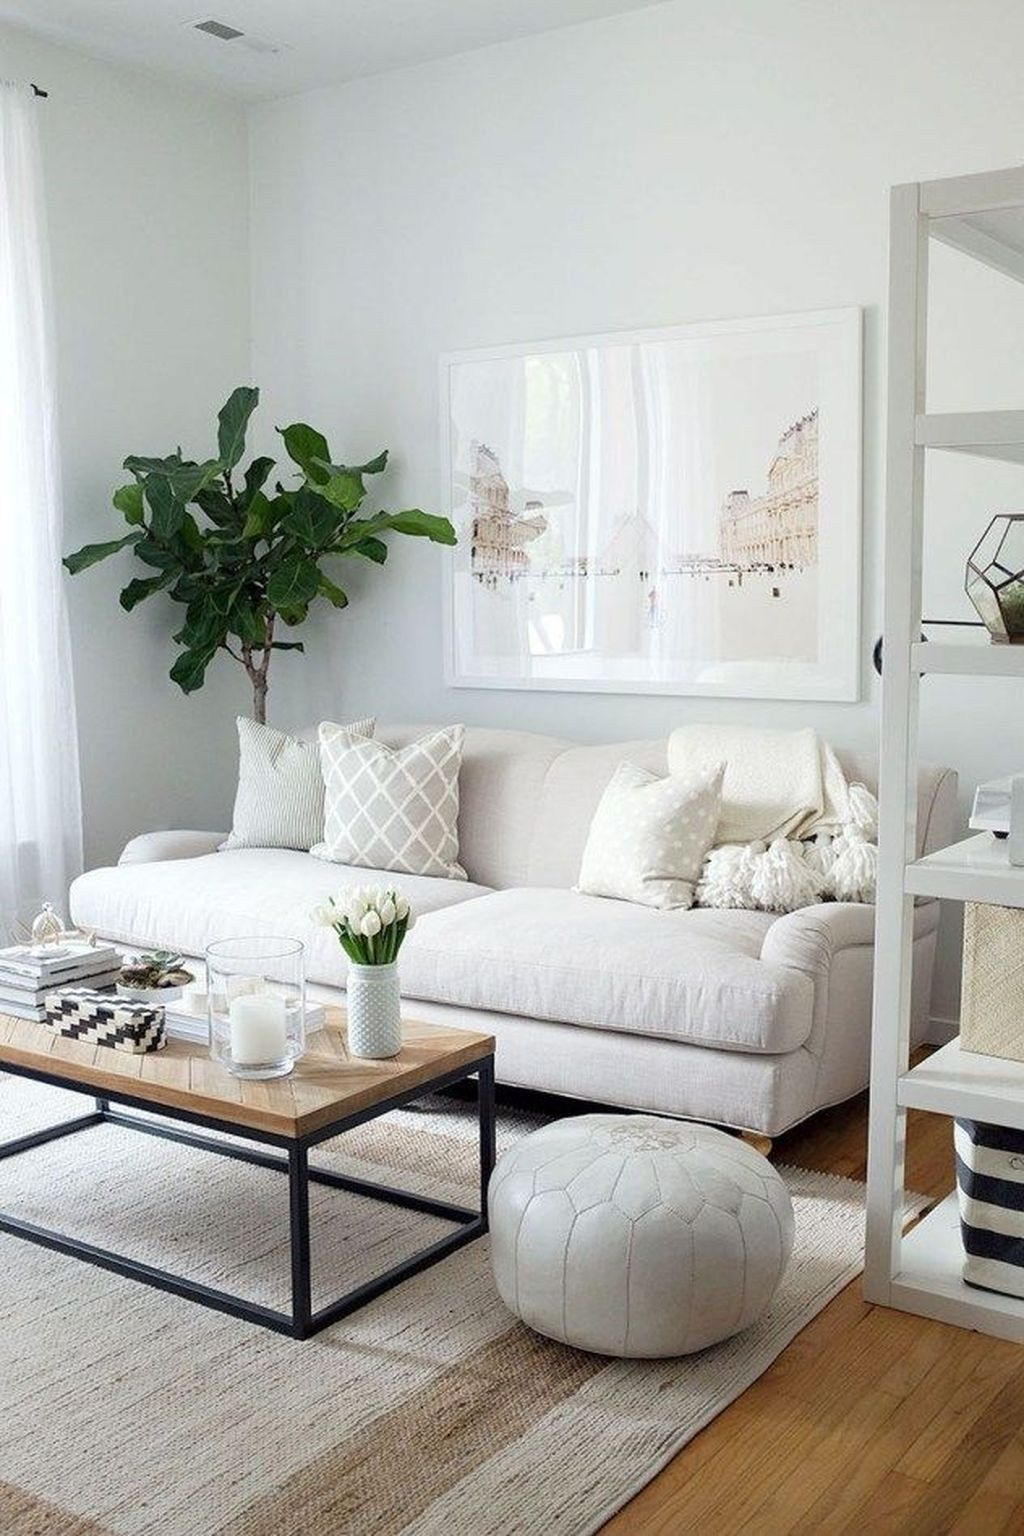 Cool apartment decorating ideas on a budget apartments